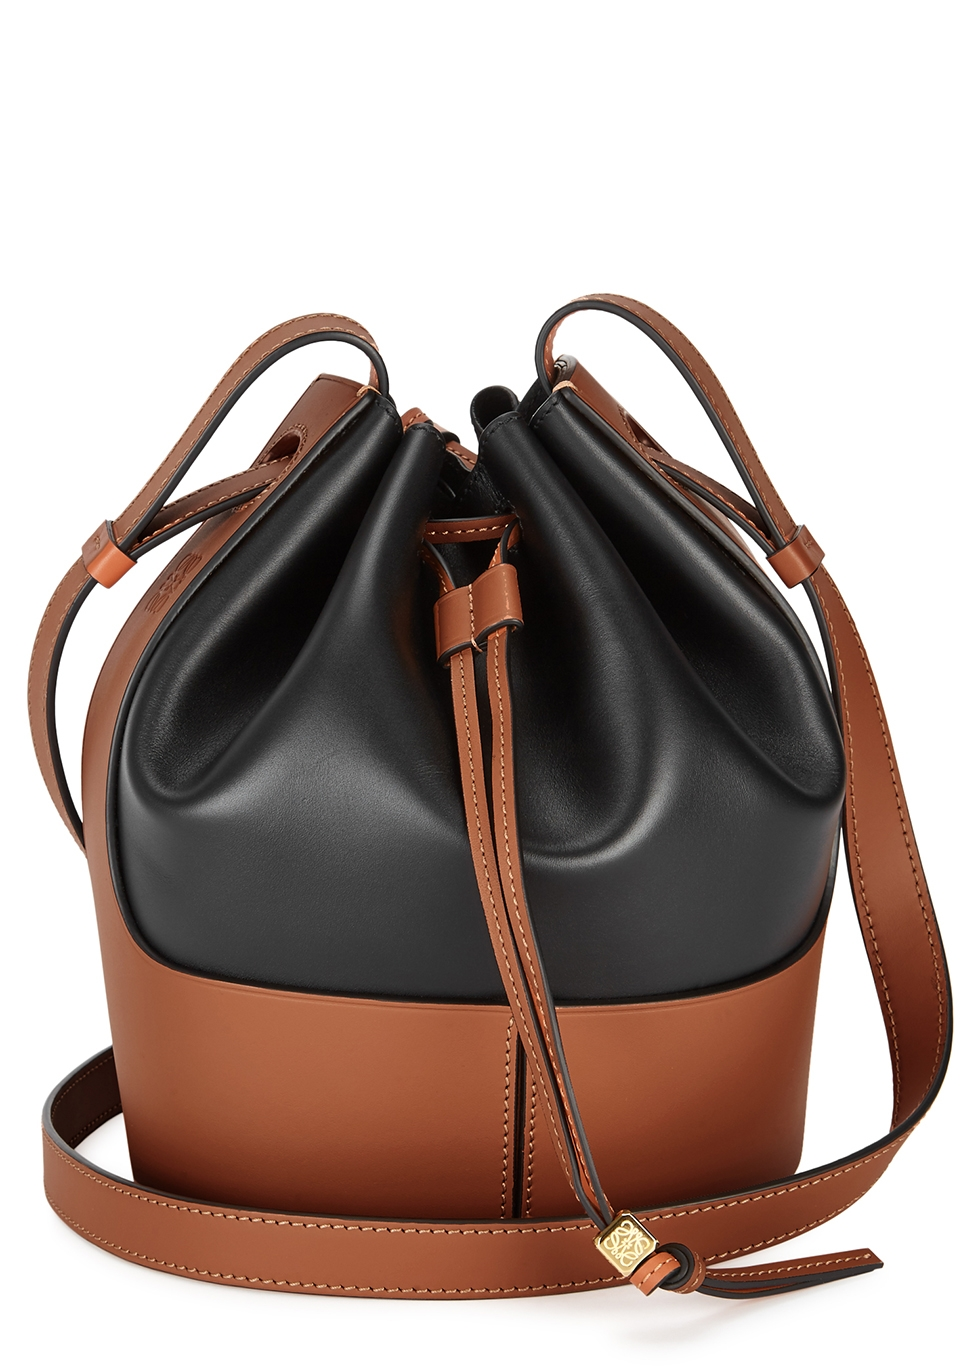 Balloon small two-tone leather bucket bag